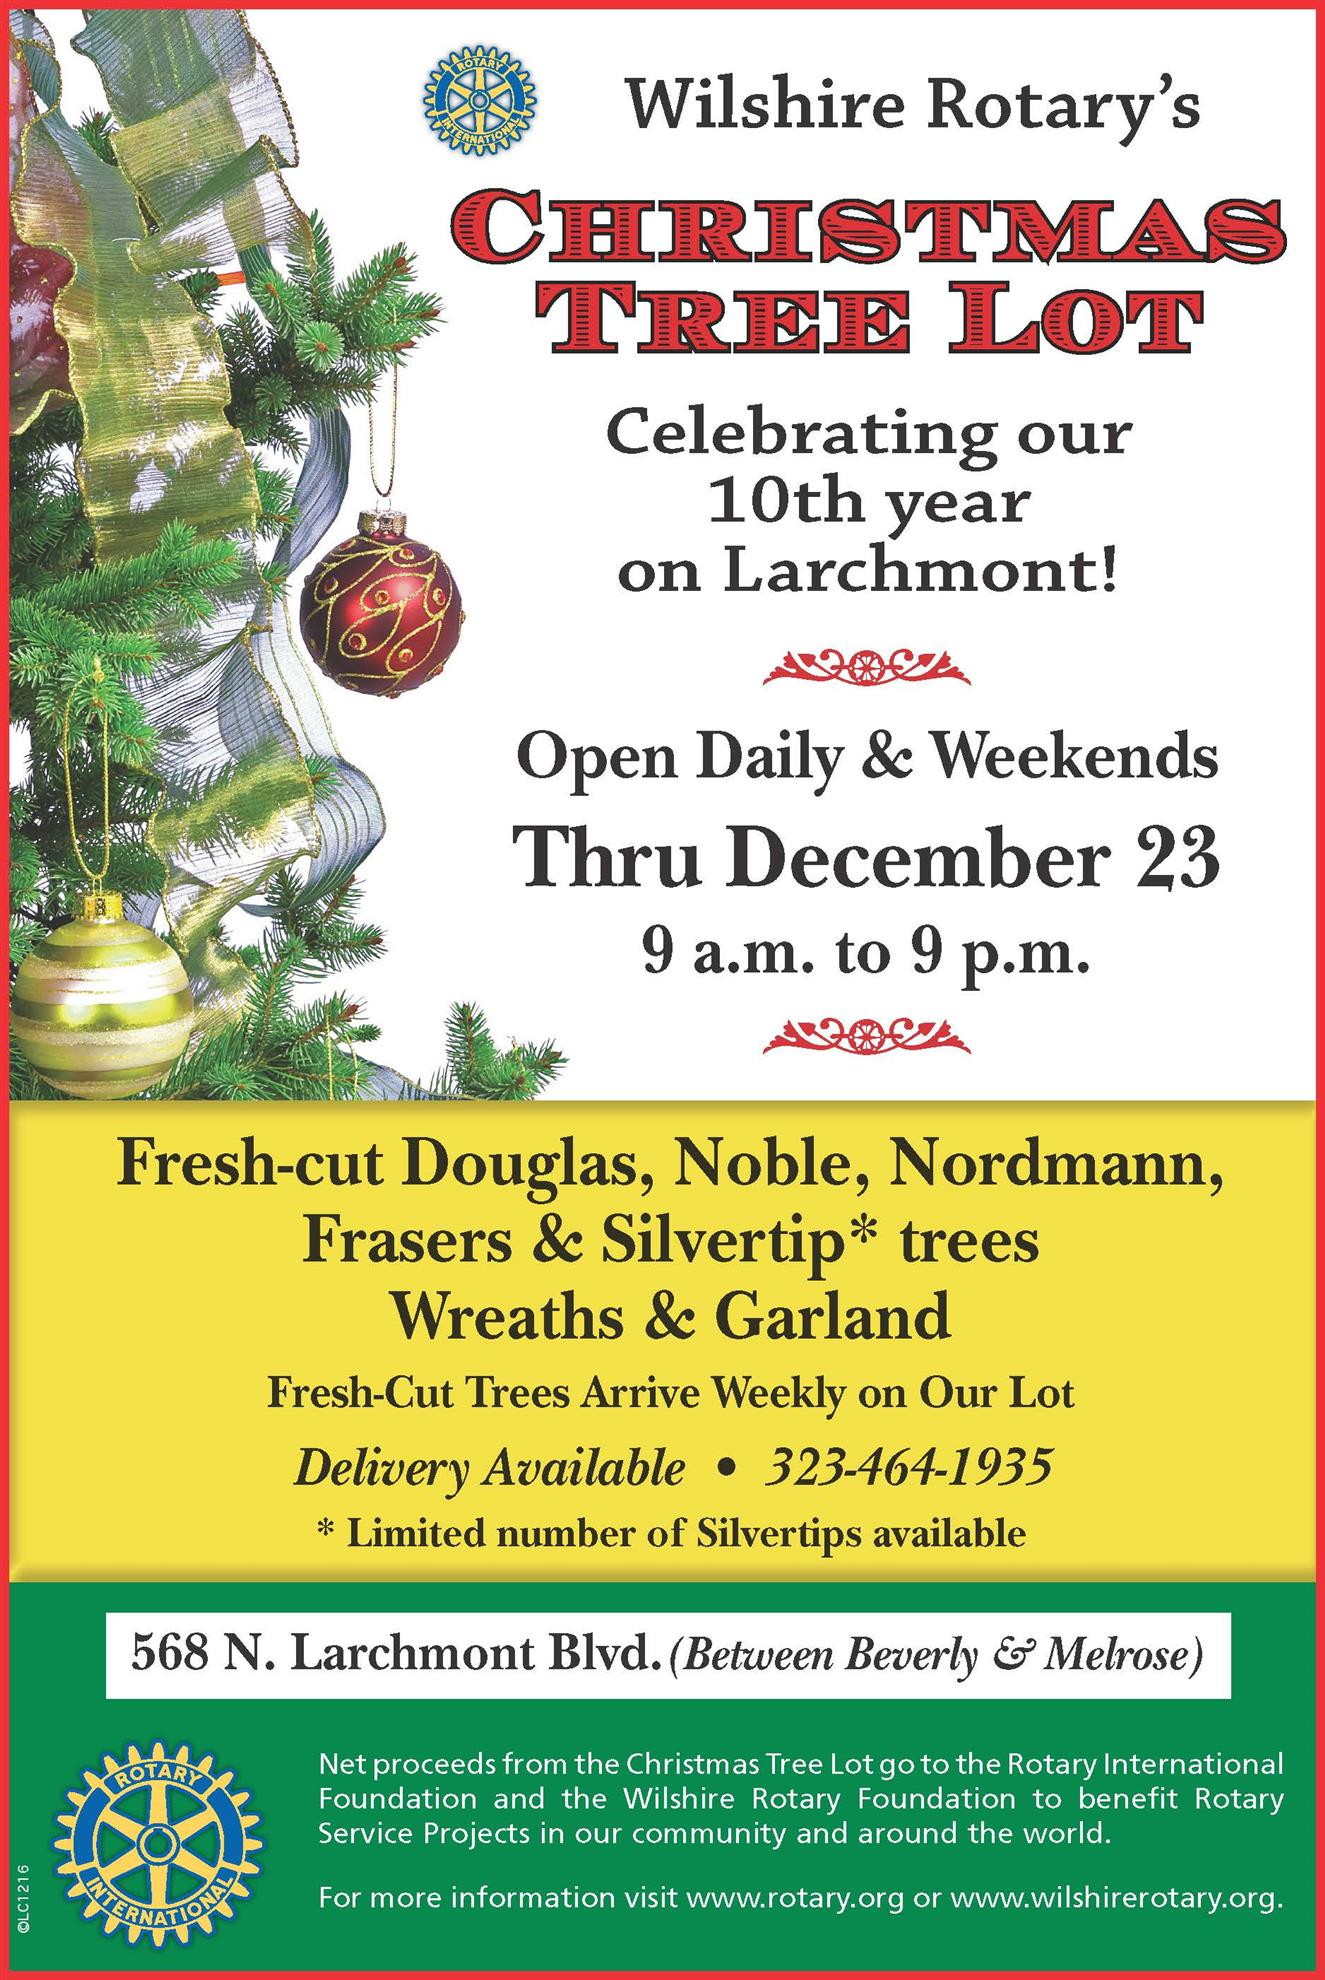 Christmas Tree Lot - 10th year on Larchmont! | Wilshire Rotary ...